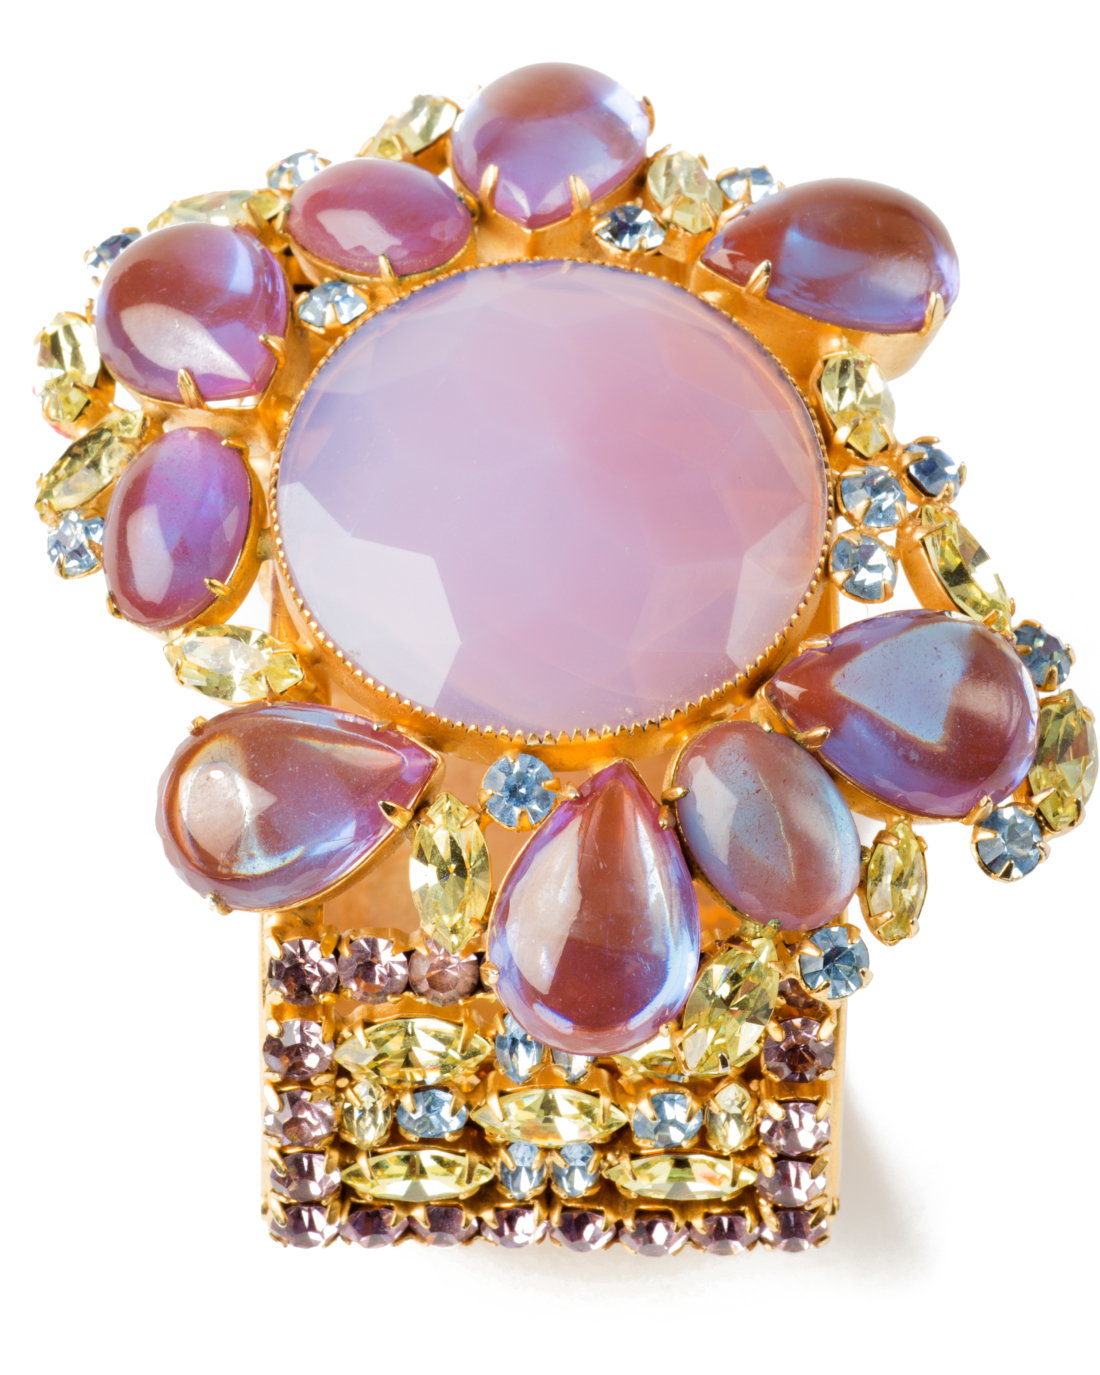 Stunning Couture Saphiret and Pink Opal Glass Jeweled Bracelet, circa 1950's